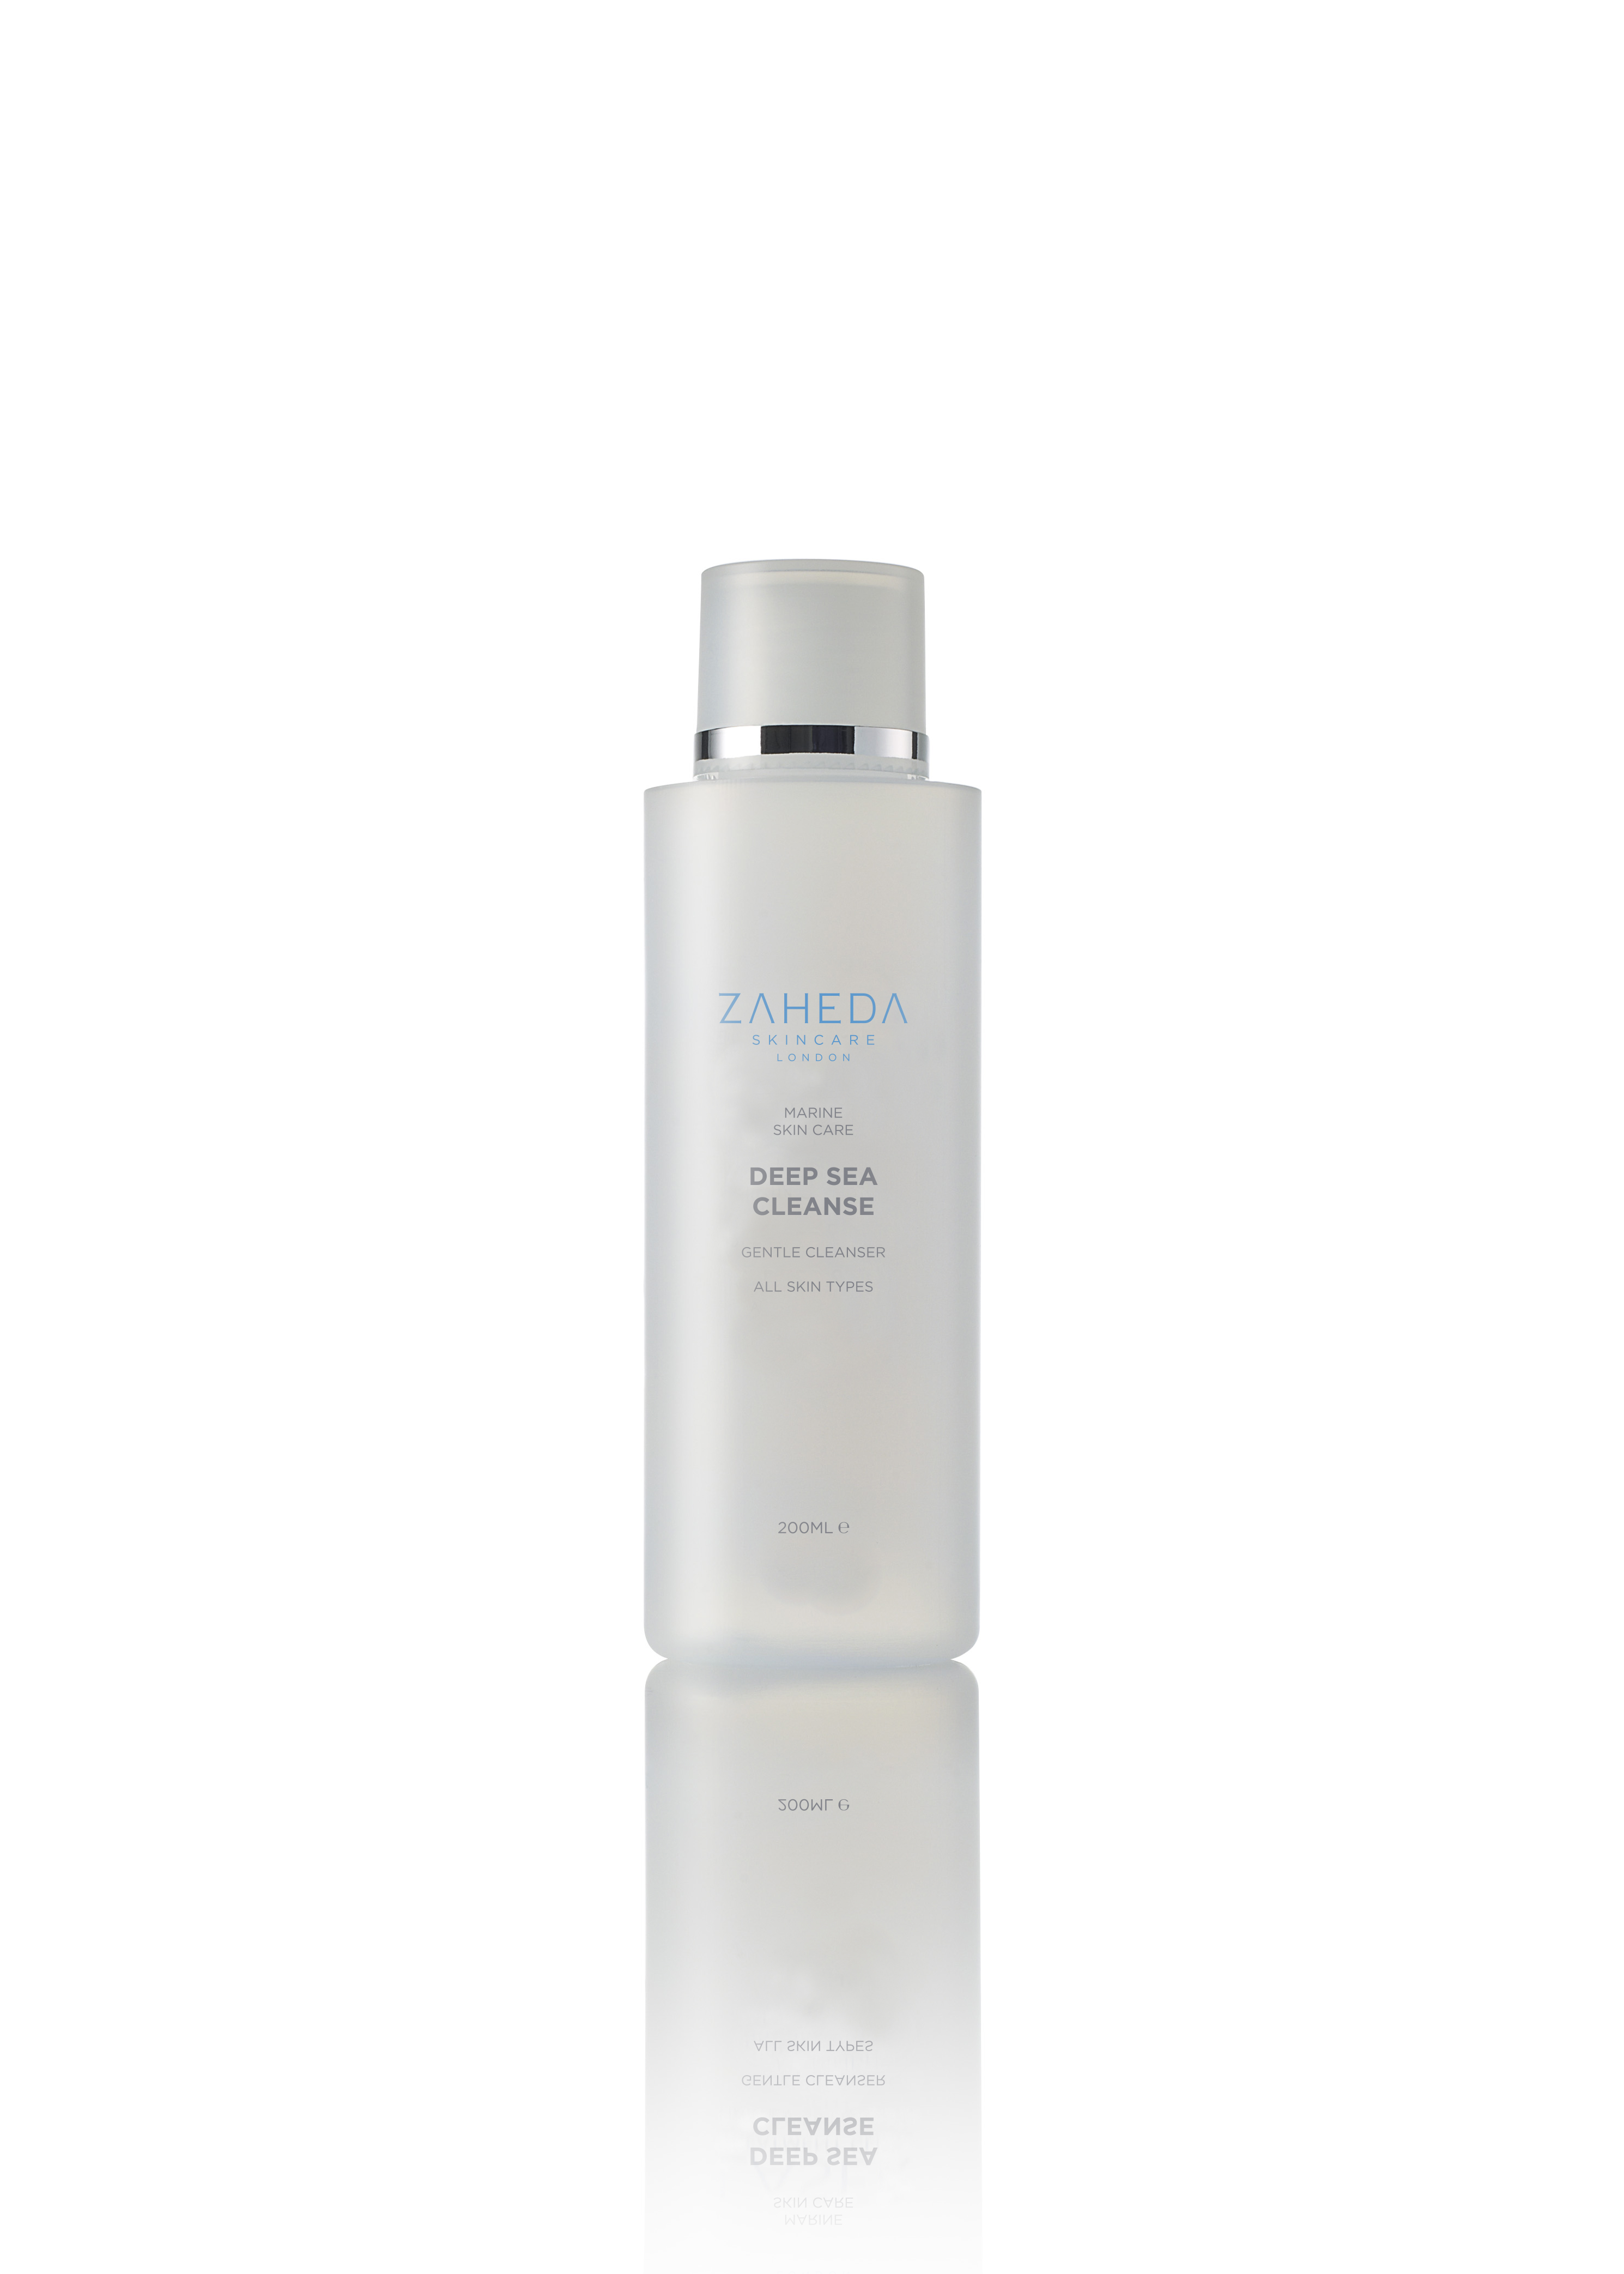 ZAHEDA Skincare London Deep Sea Gentle Cleanser